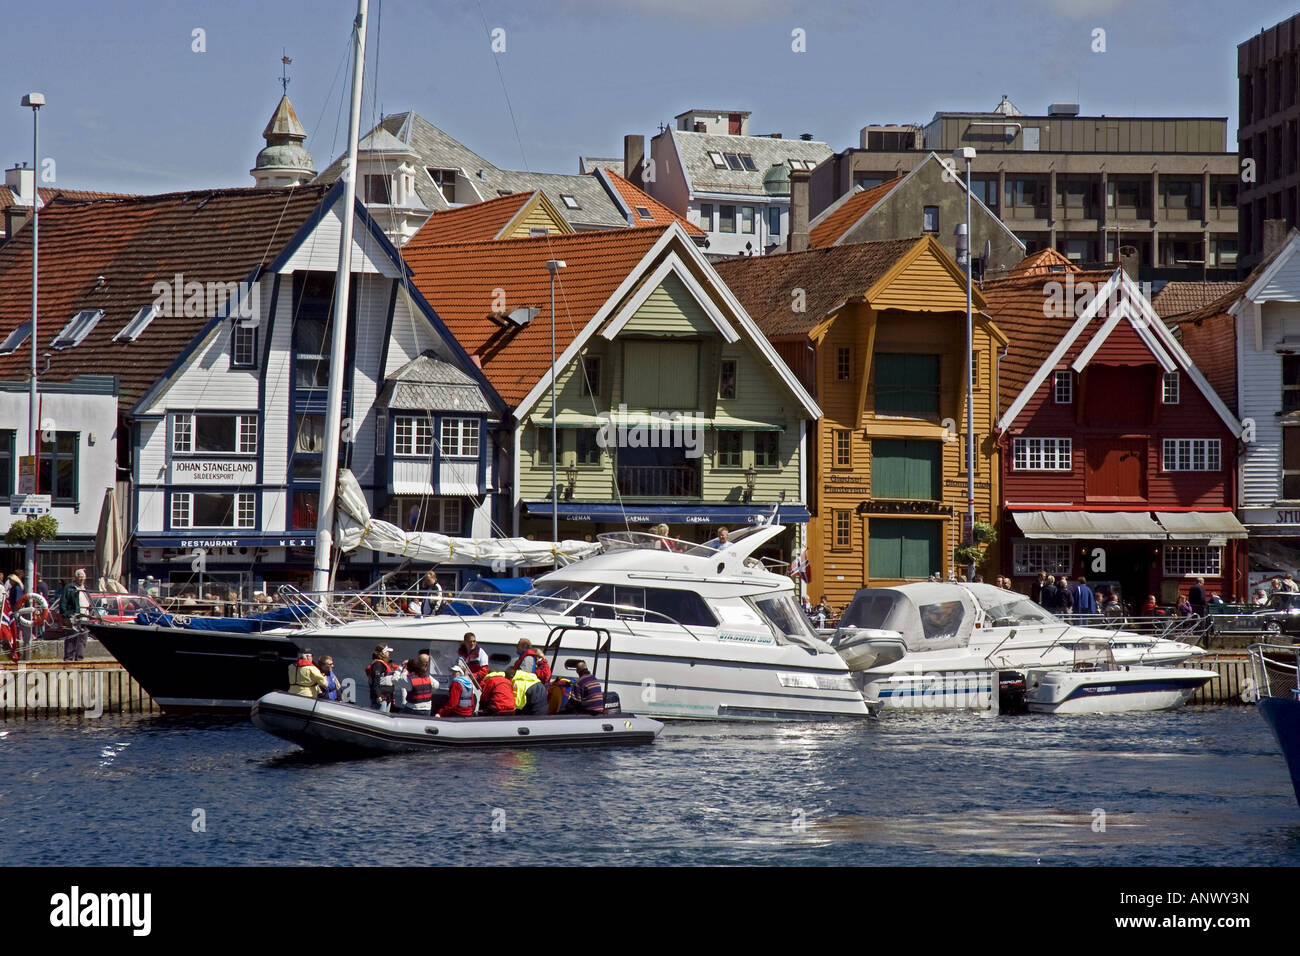 Boats, old buildings and people in the harbour of central Stavanger, Norway - Stock Image